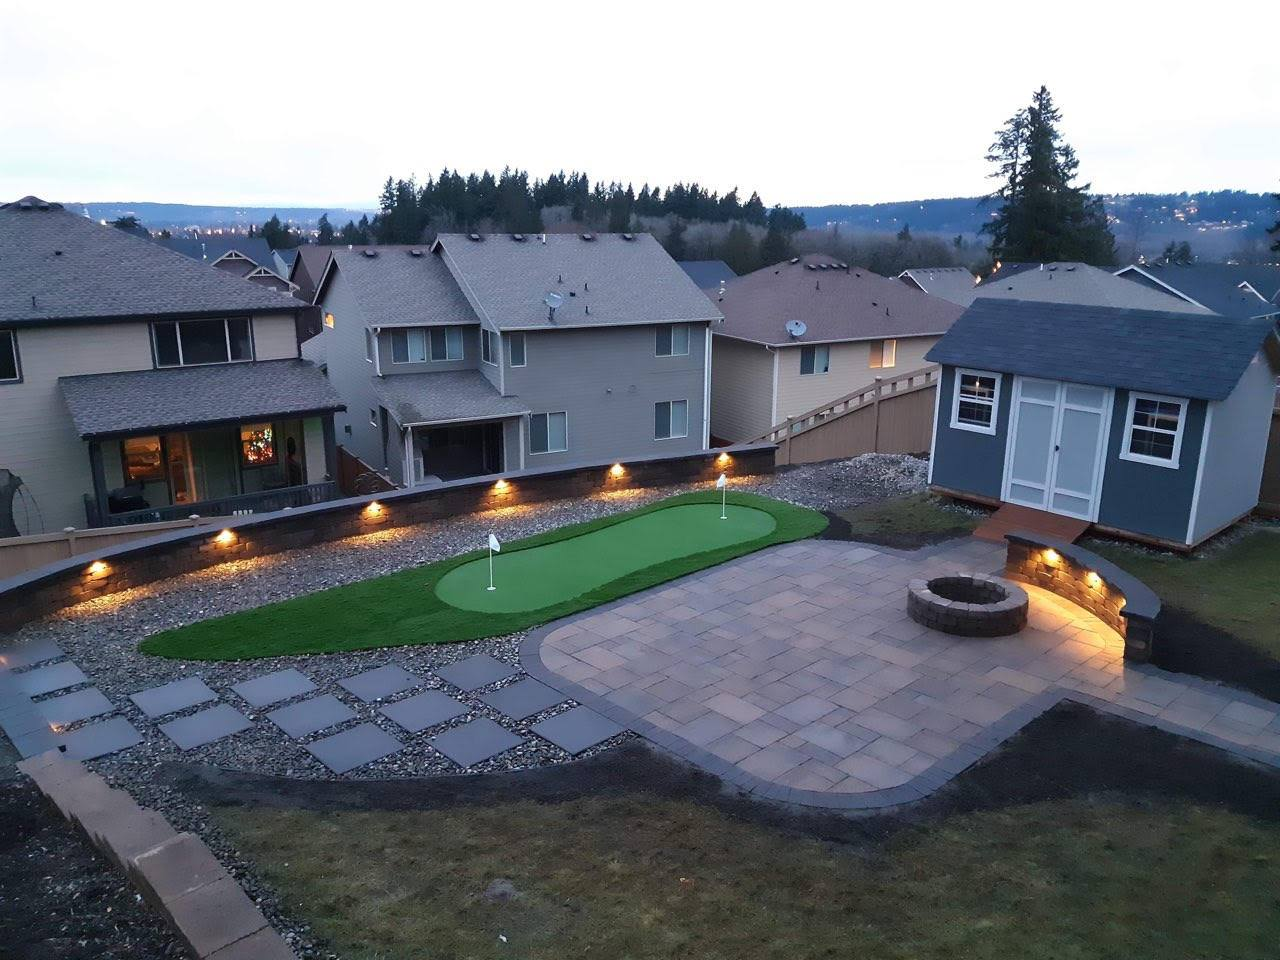 Synthetic Turf Backyard design with putting green and paver patio